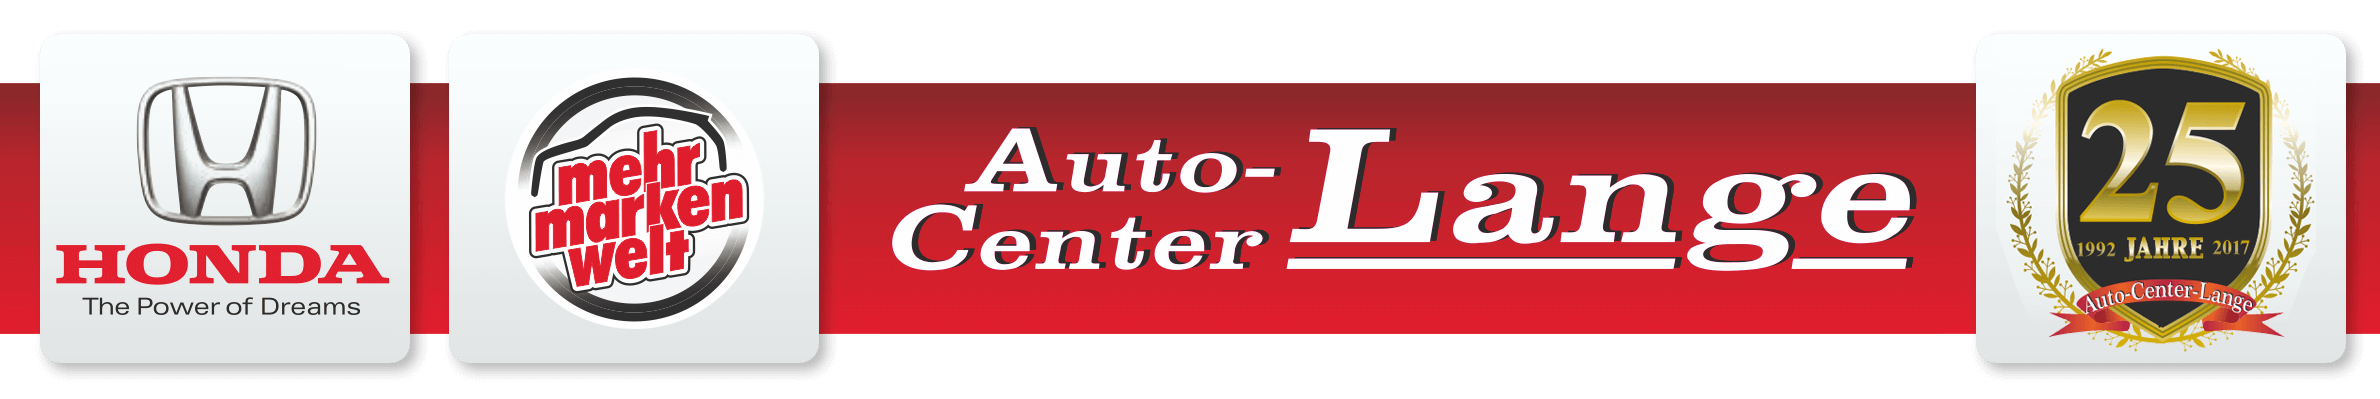 Honda Auto-Center-Lange GmbH